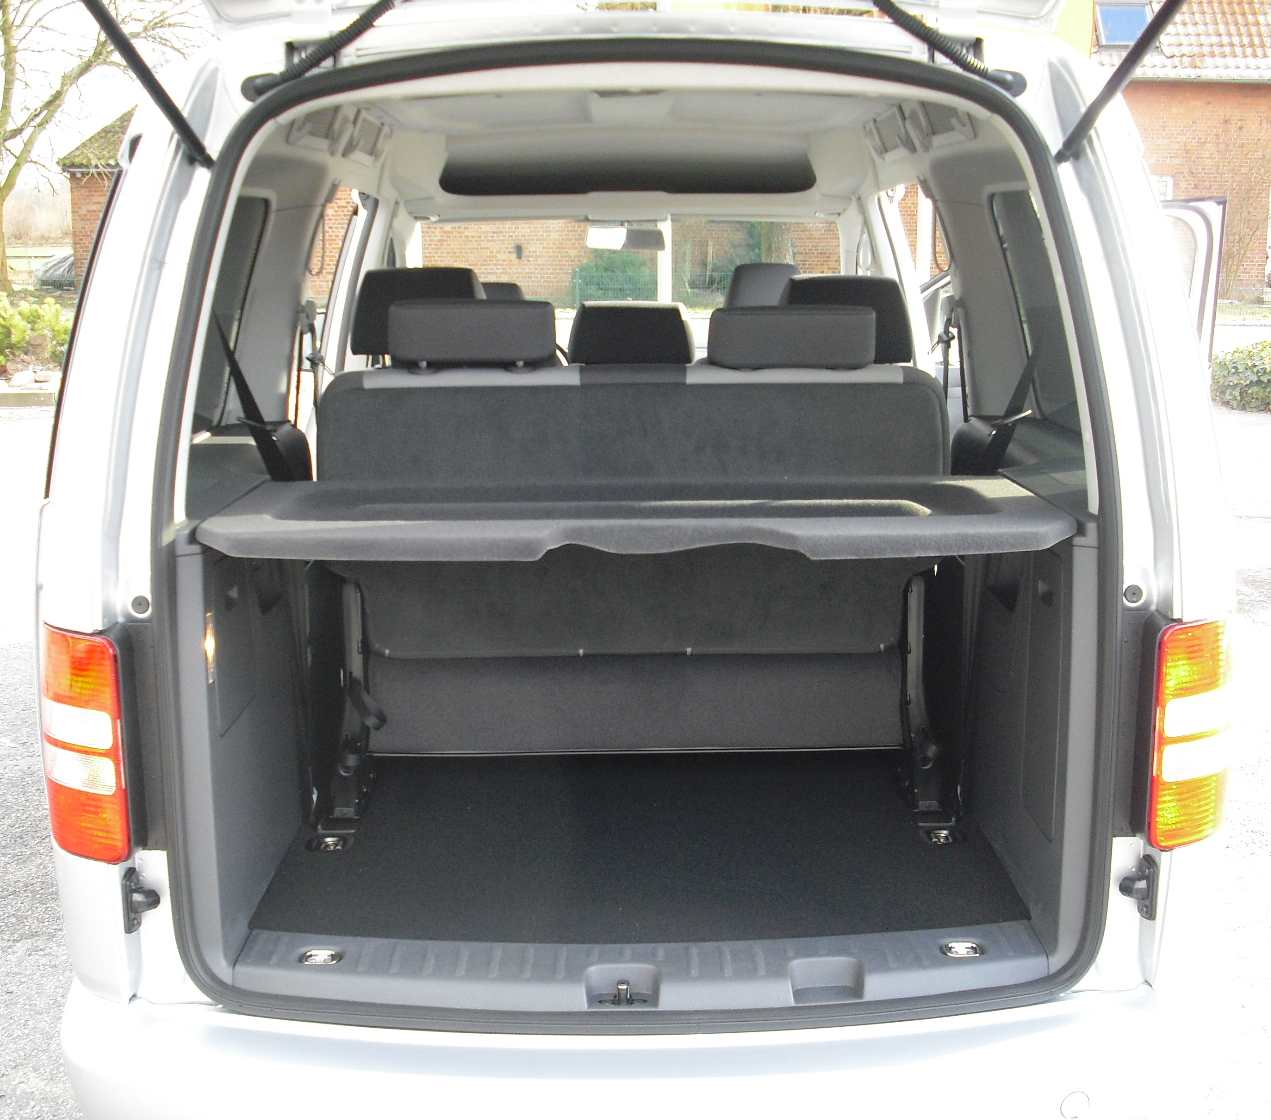 vw caddy reimport maxi neues modell 2015 modelljahr 2016. Black Bedroom Furniture Sets. Home Design Ideas